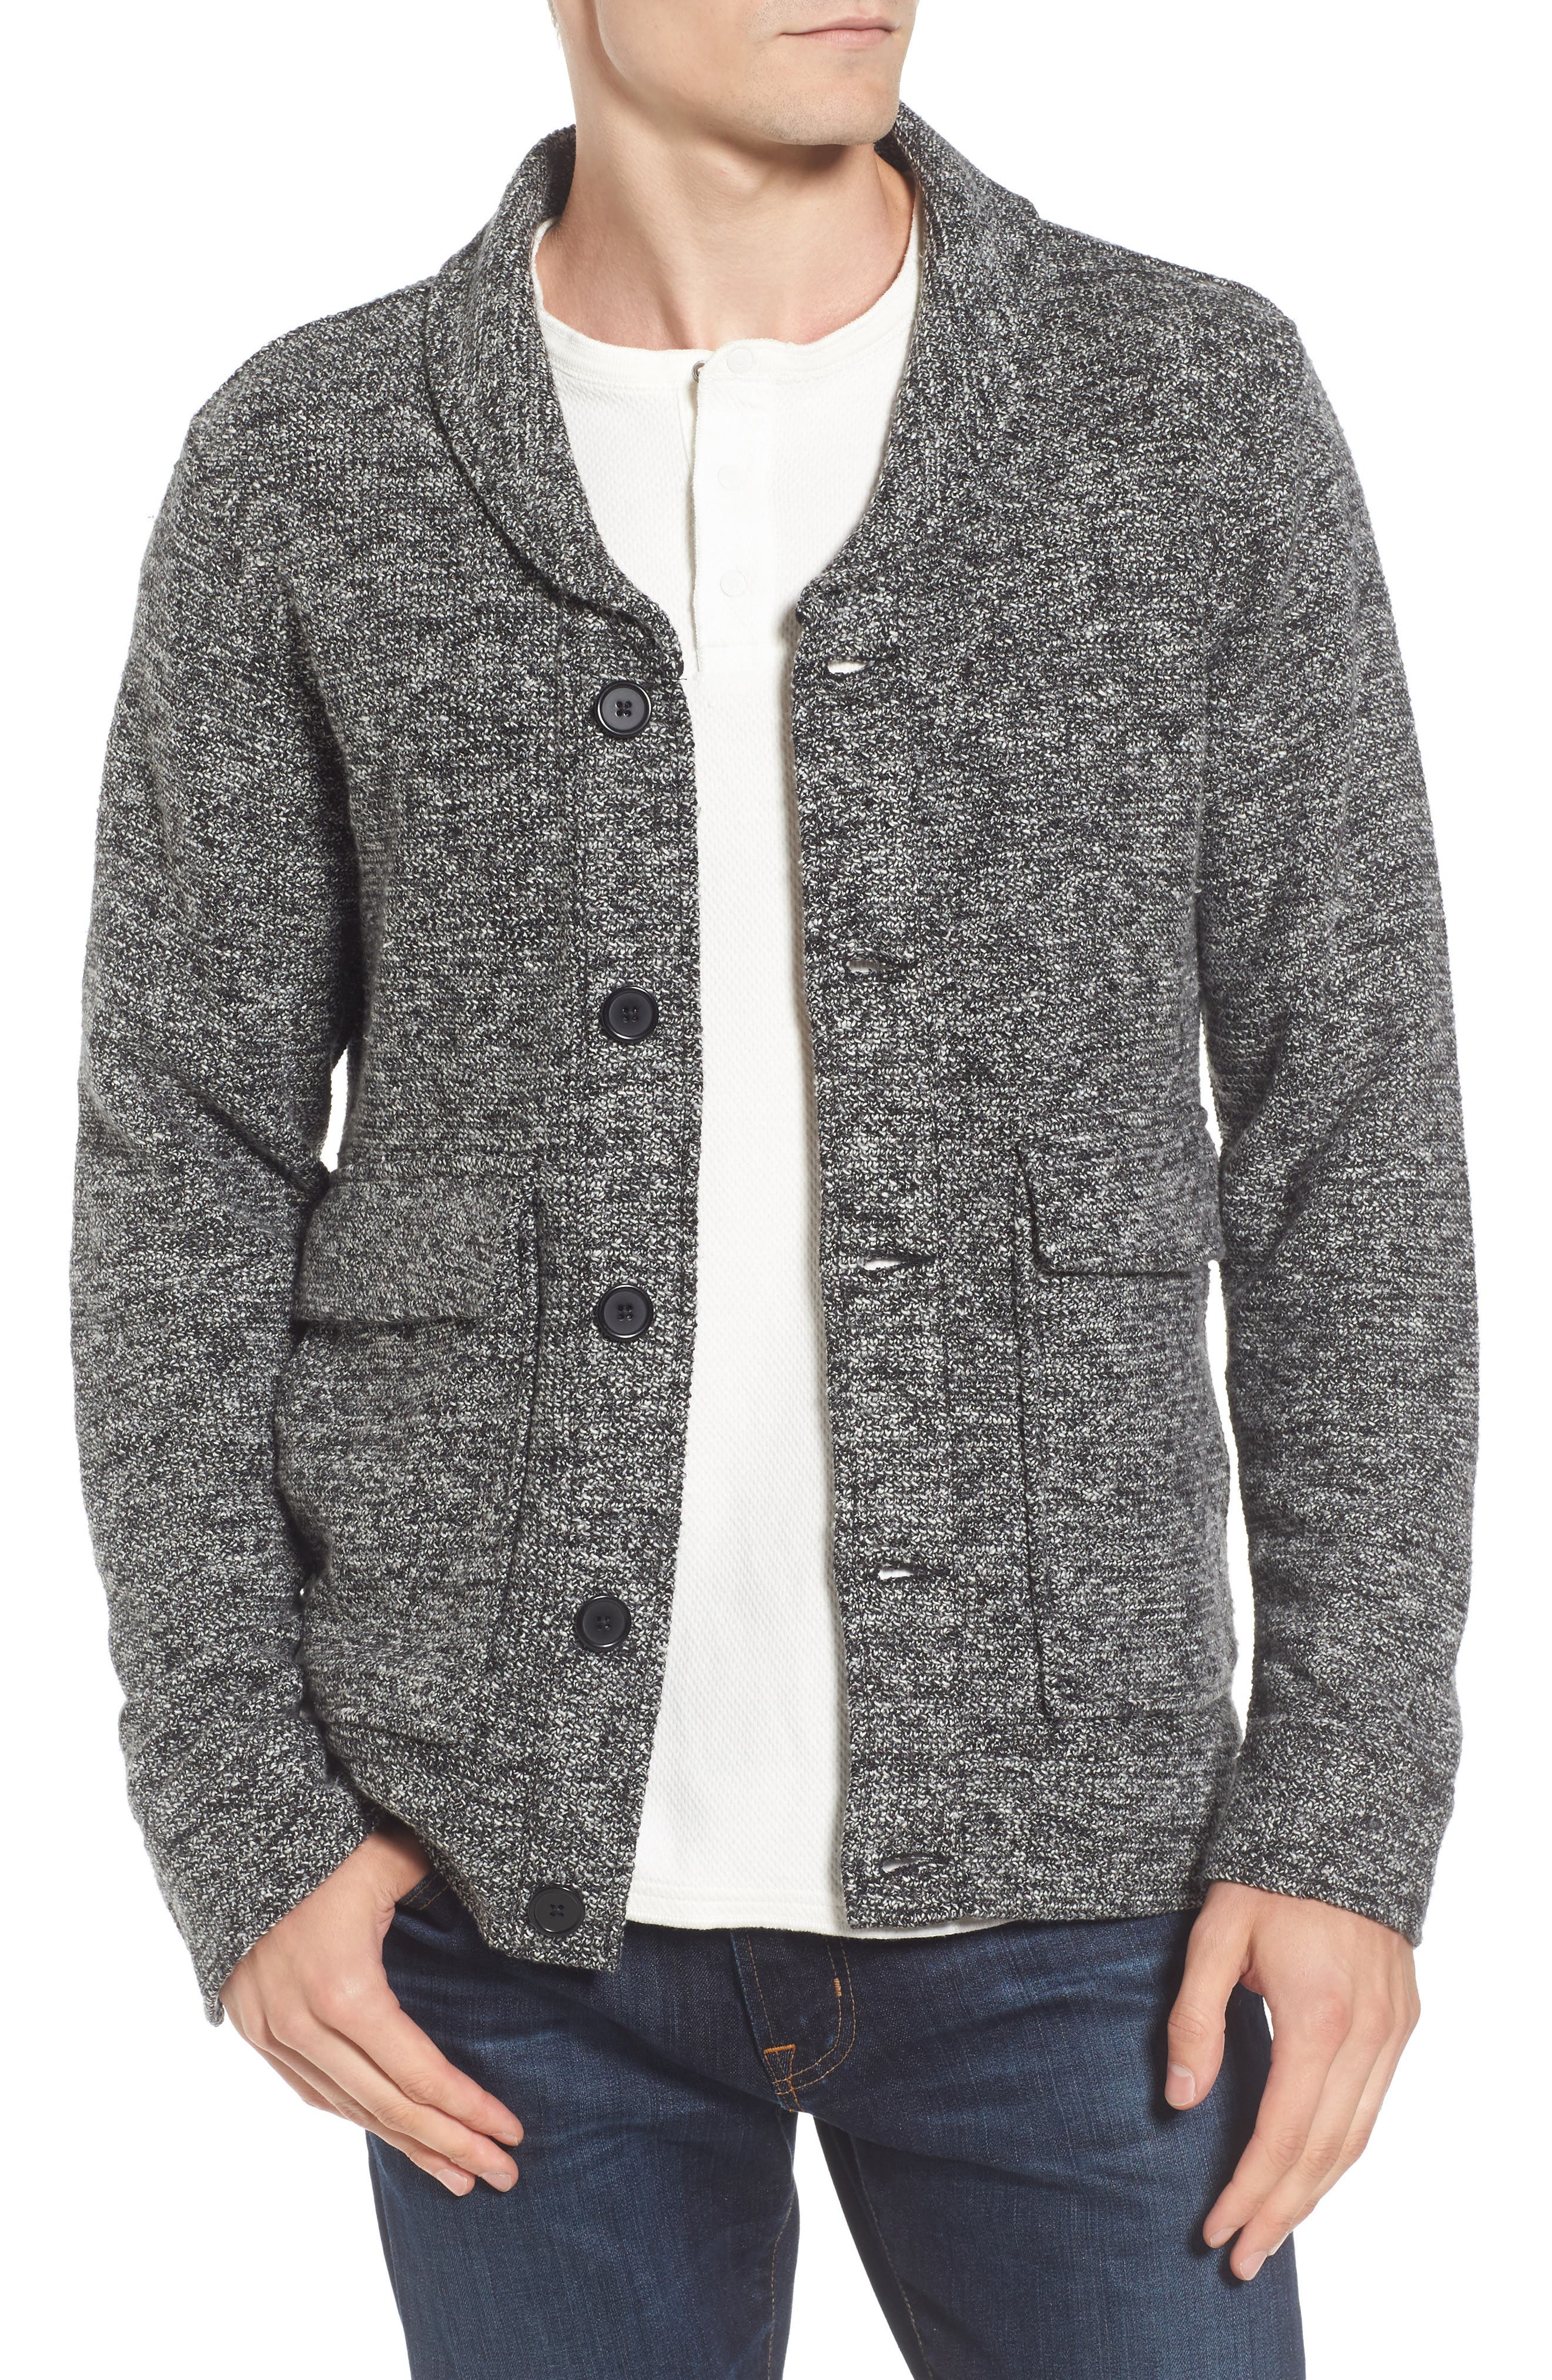 Men's Cardigan Sweaters & Jackets | Nordstrom